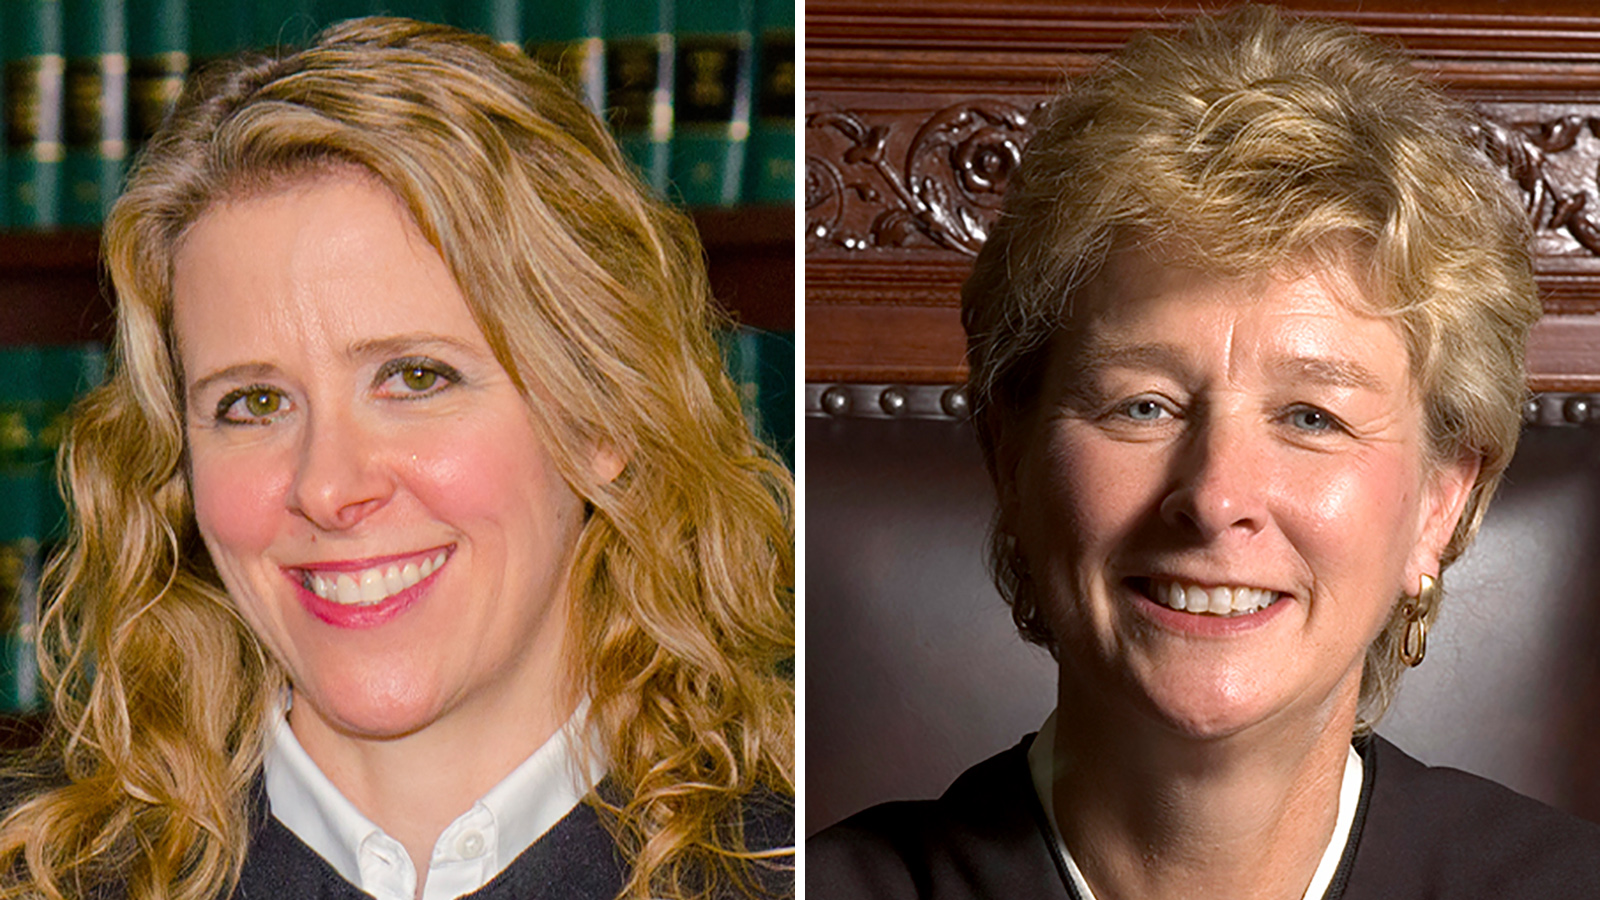 Collage of portraits of Wisconsin Supreme Court Justice Rebecca Bradley and Justice Ann Walsh Bradley